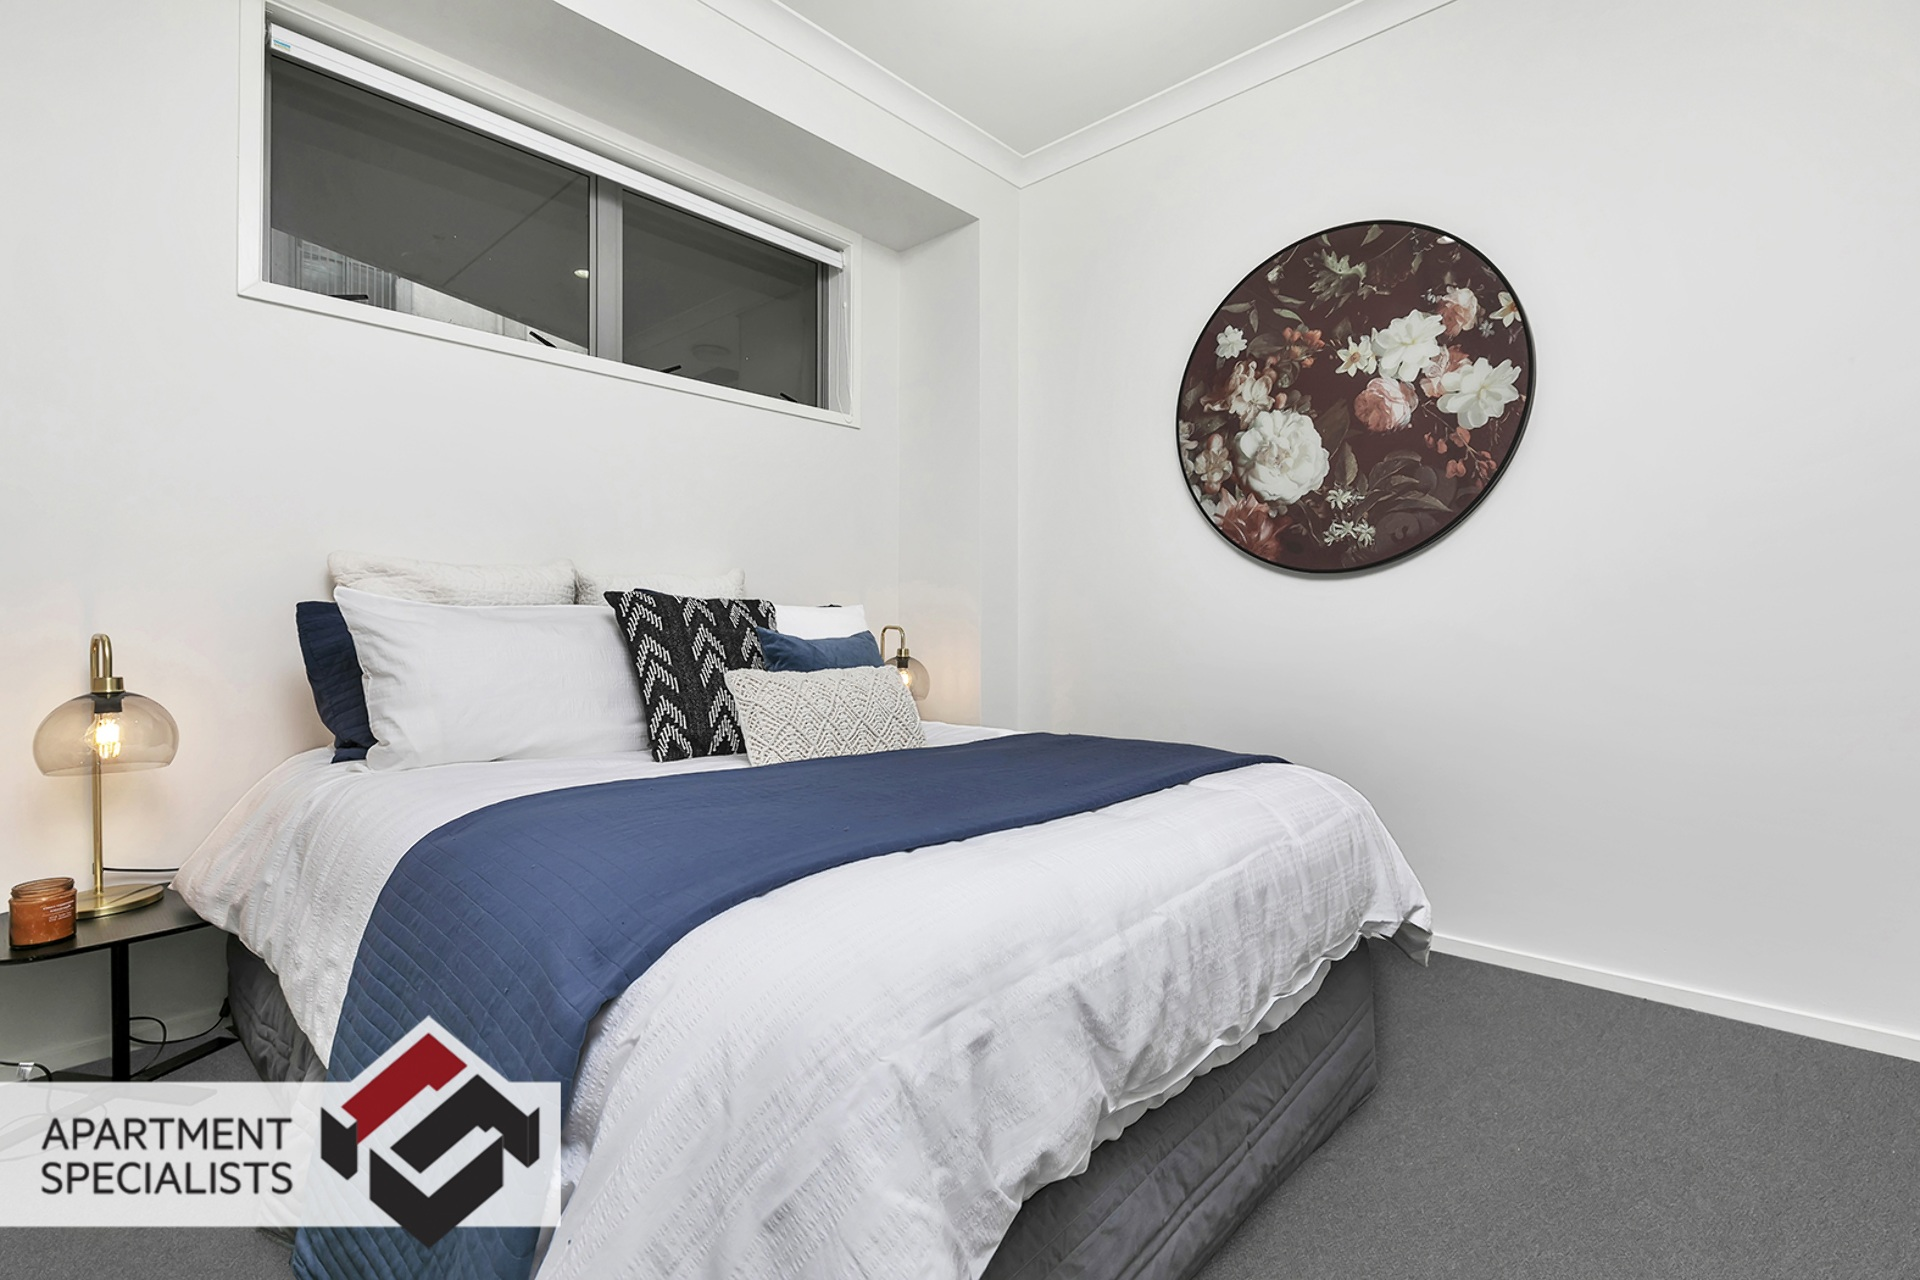 Hero | 149 Nelson Street, City Centre | Apartment Specialists